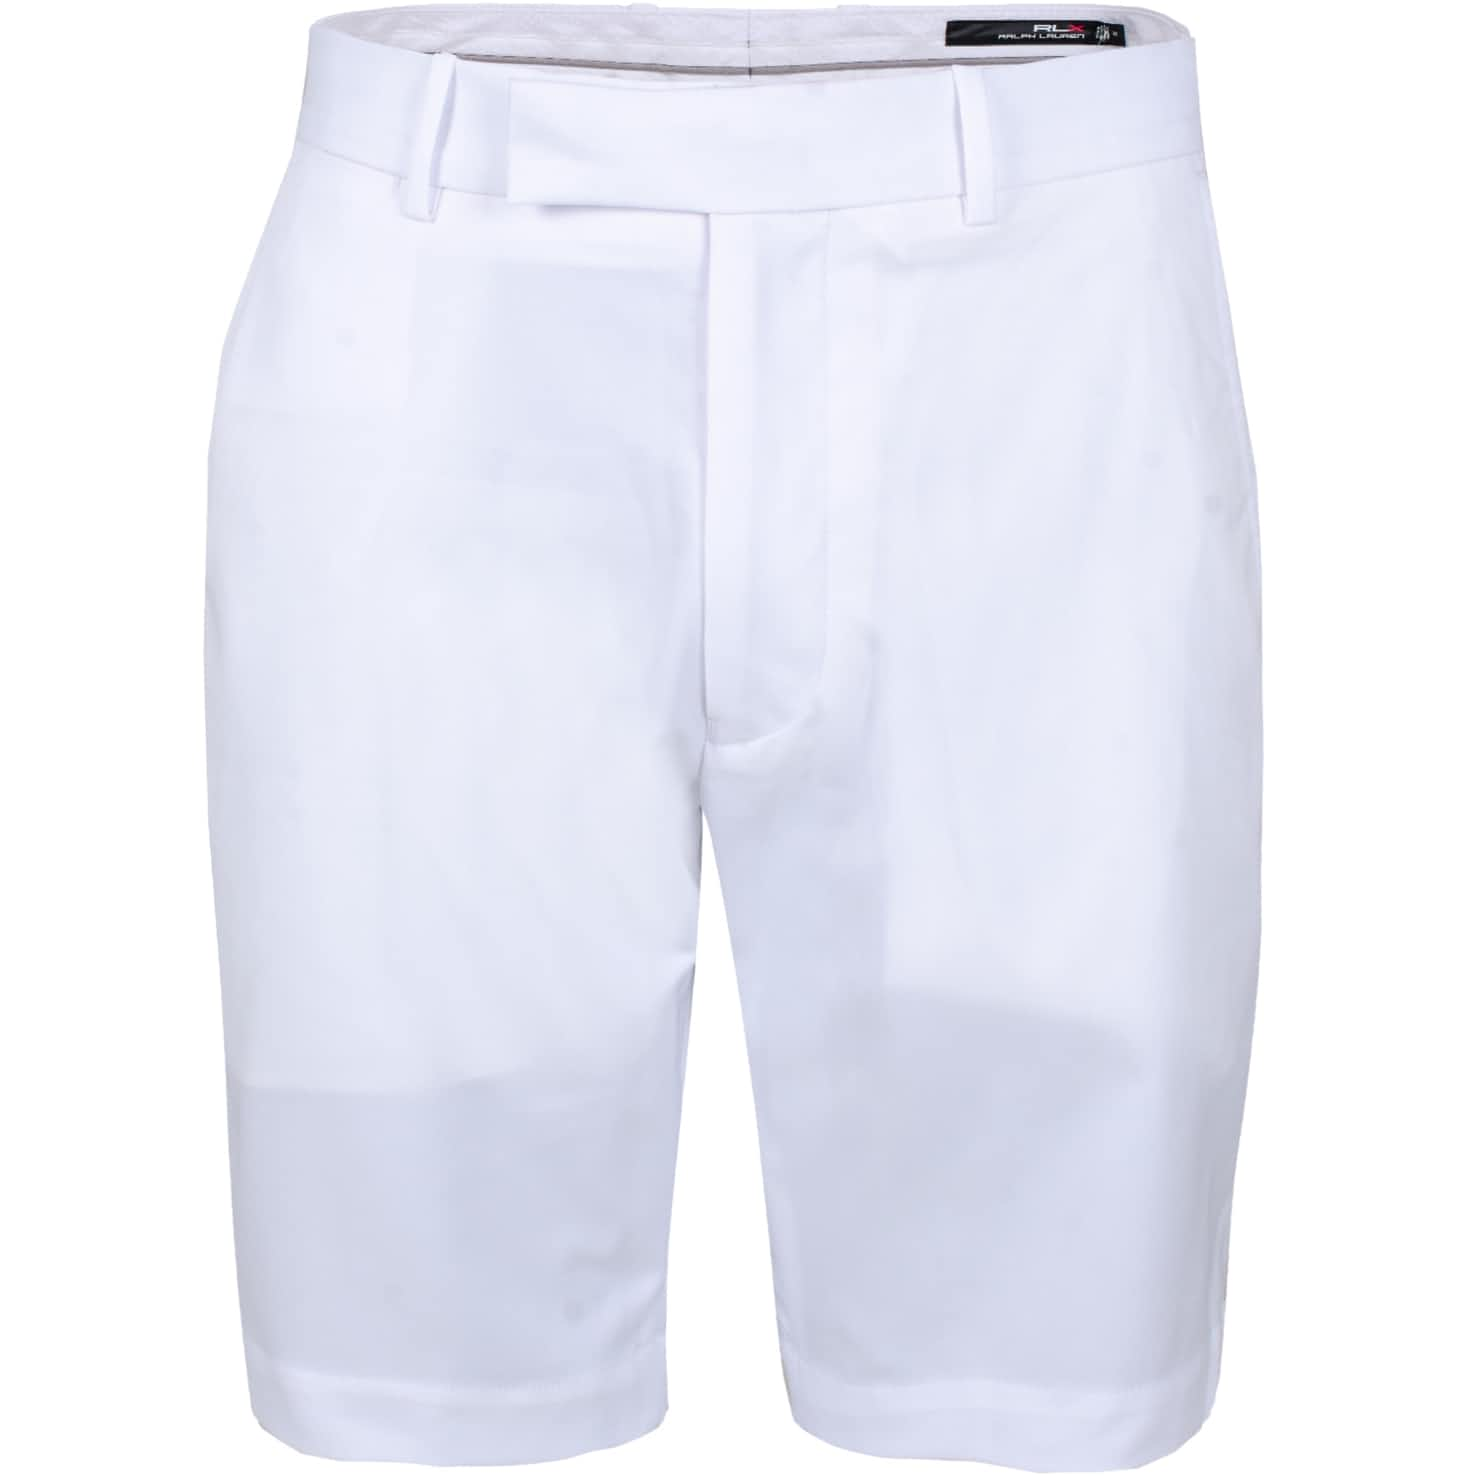 Athletic Stretch Shorts Pure White - SS20